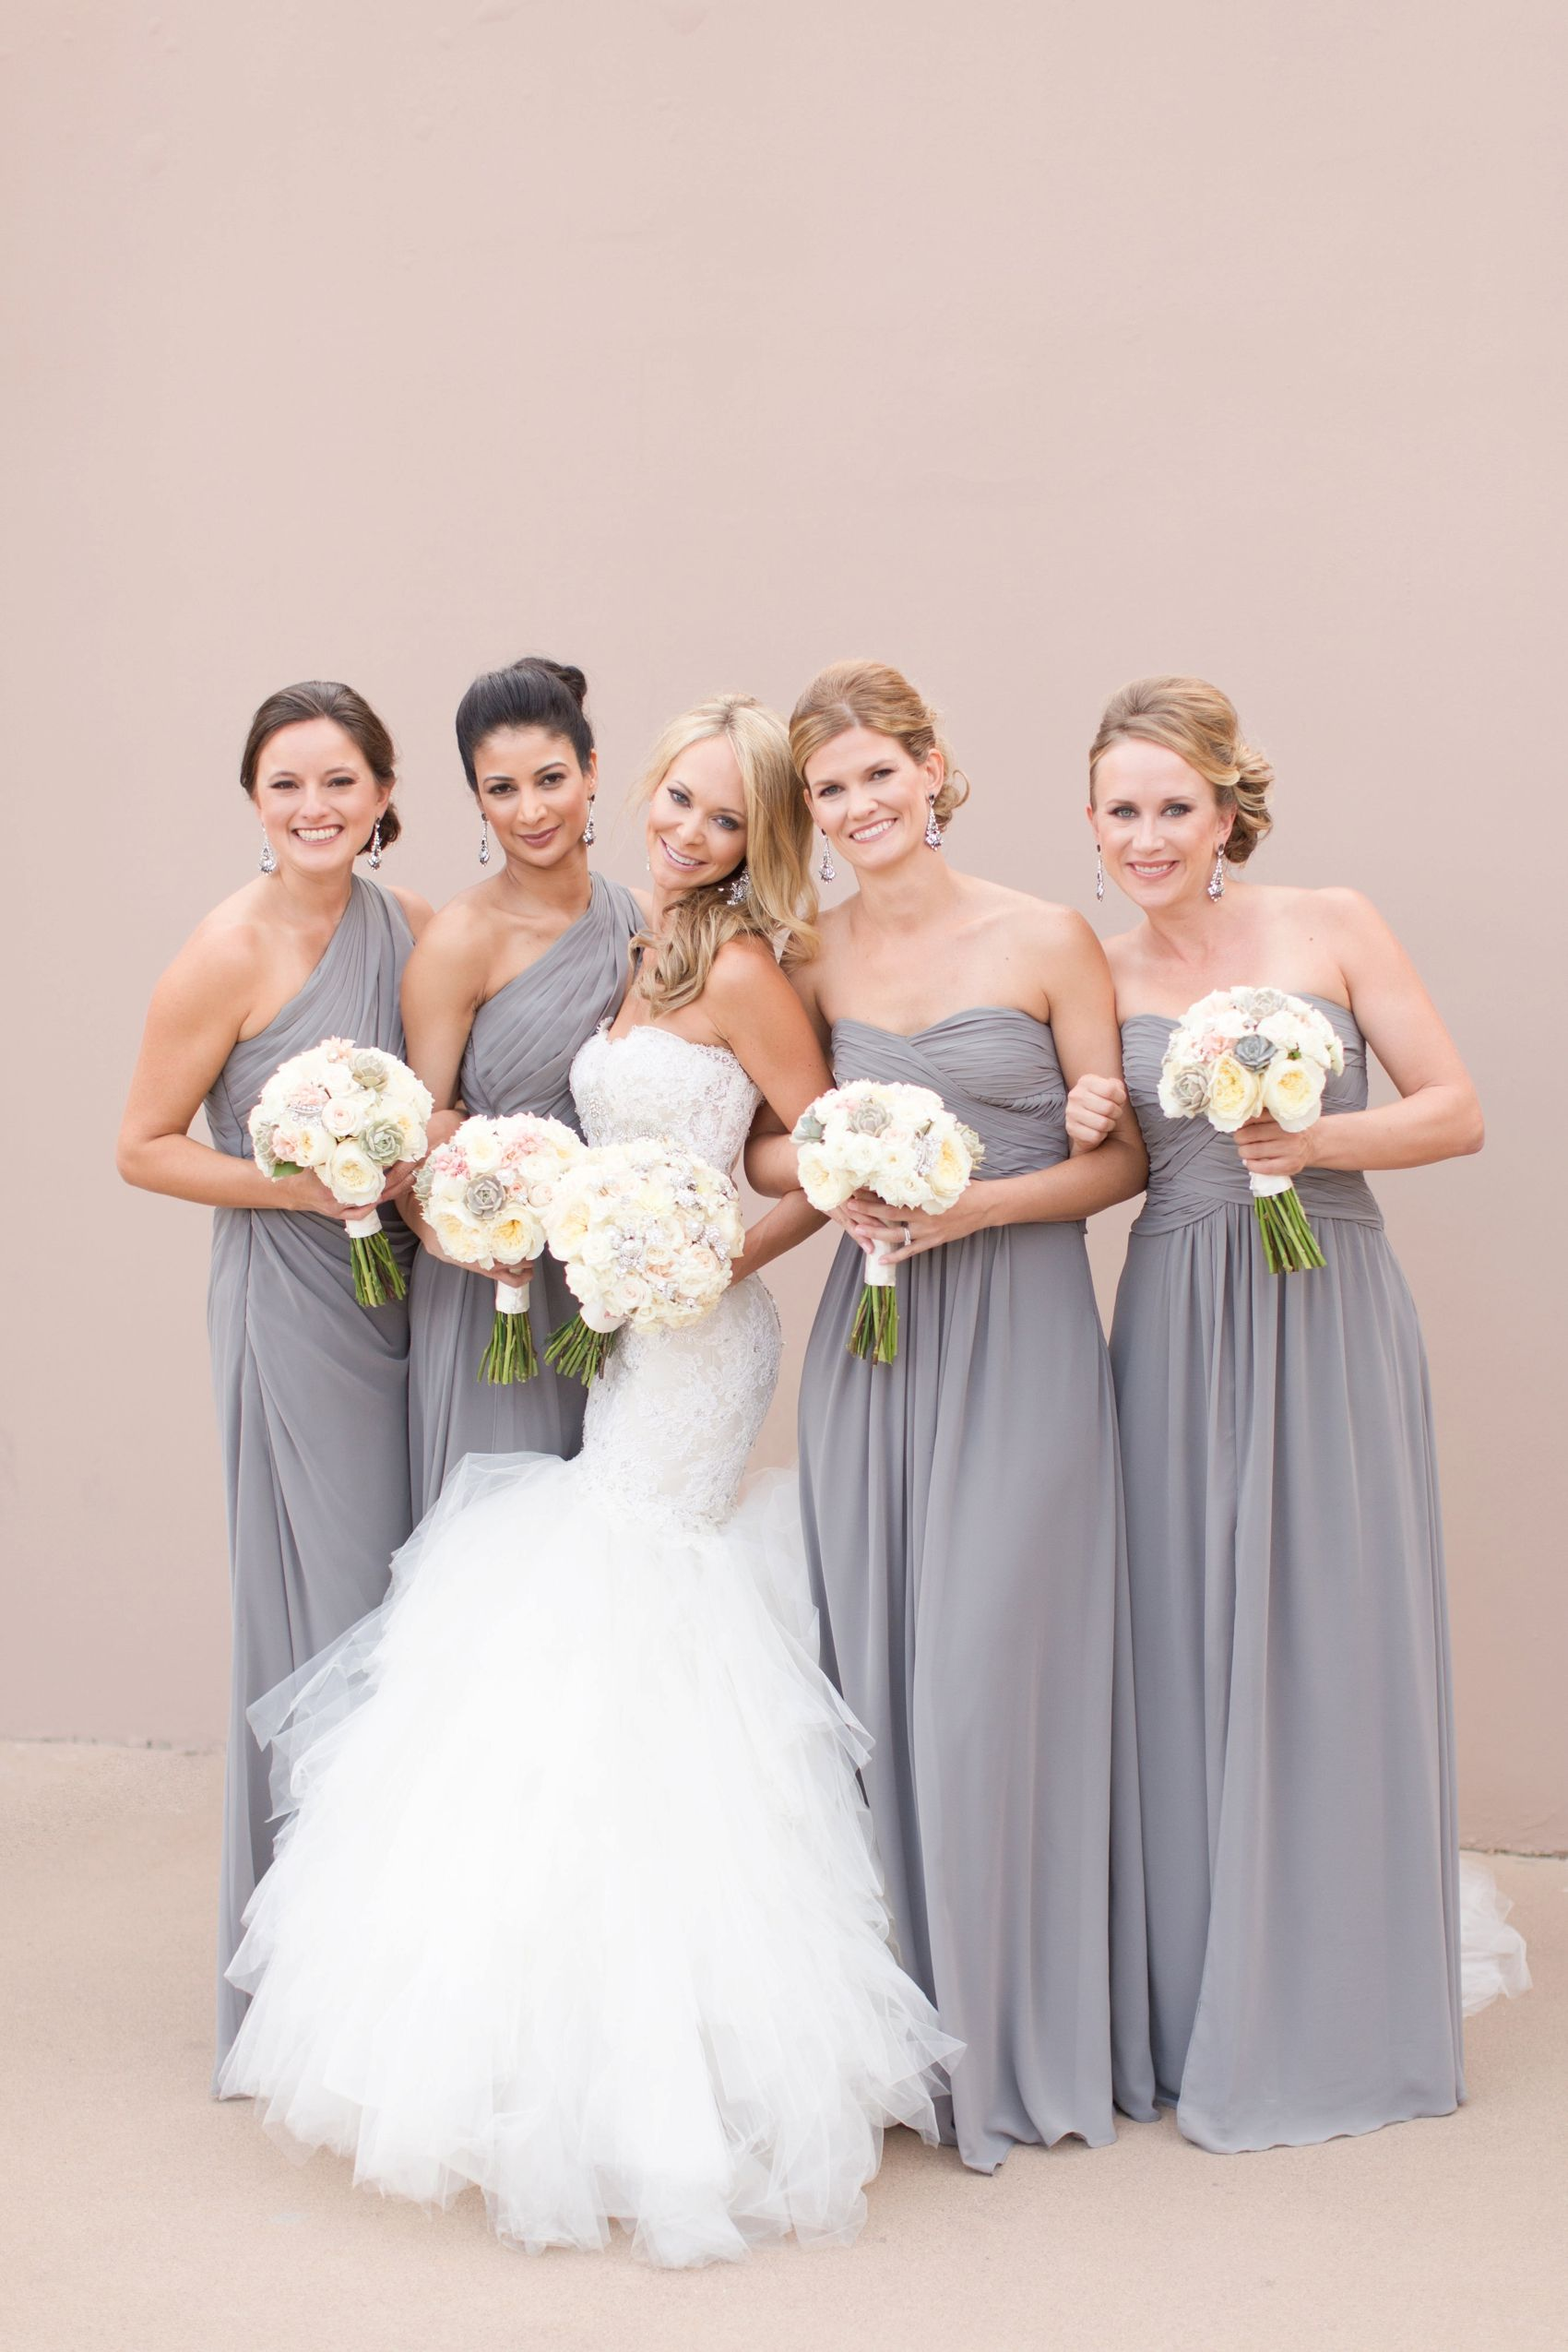 Romantic four seasons scottsdale wedding corset wedding dresses stunning four seasons scottsdale wedding with a pallet of soft grey white and blush ombrellifo Images